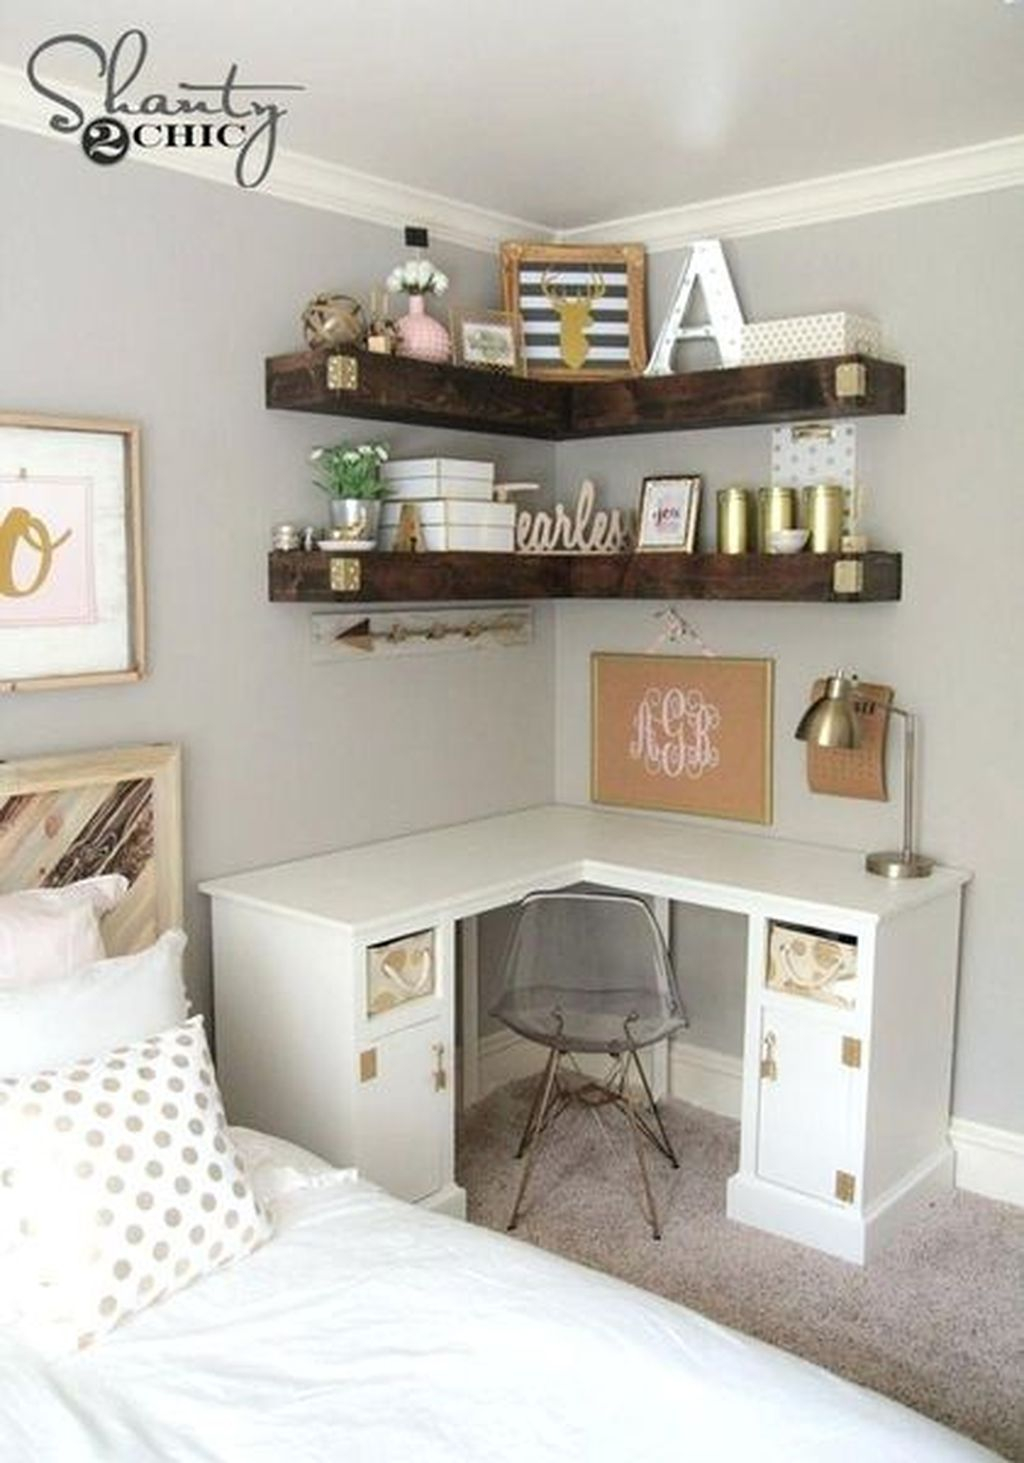 An amazing diy shelves for teen girl bedroom add more storage for your small space with some floating corner shelves